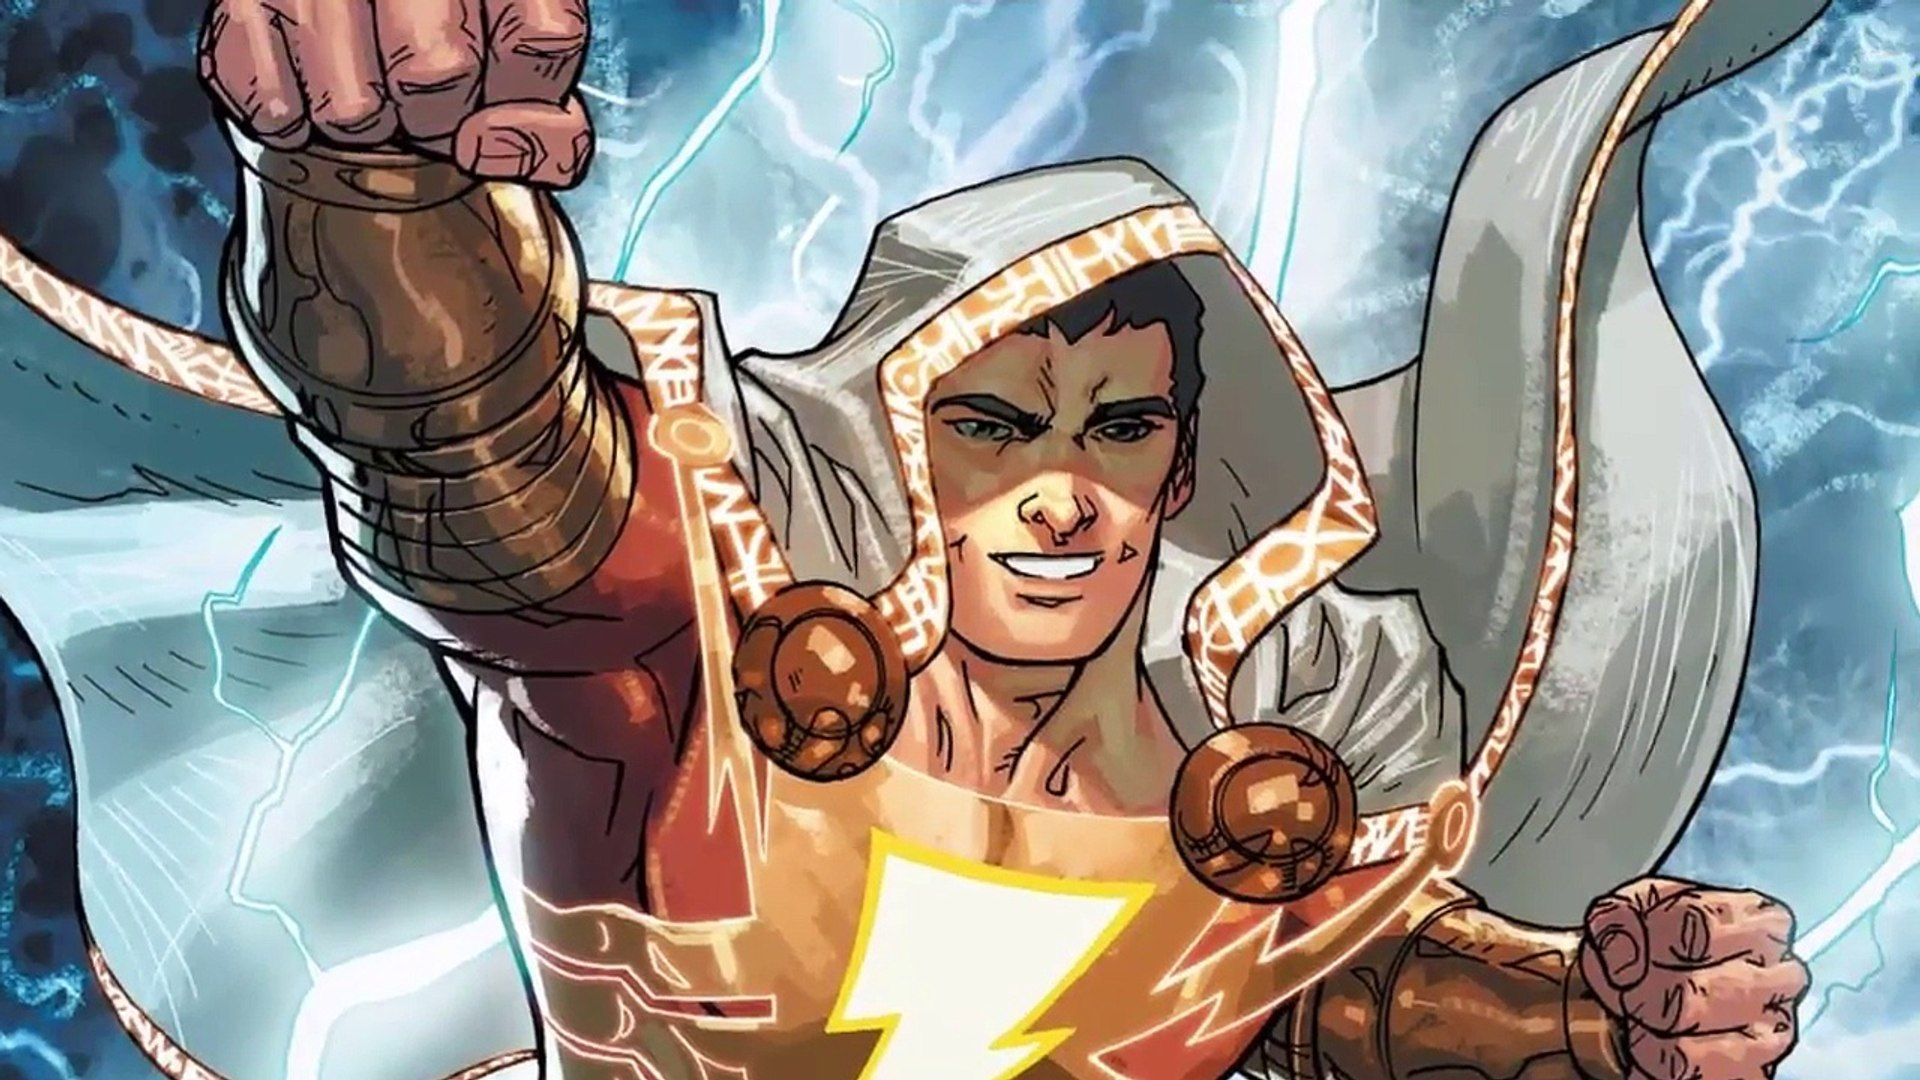 Shazam Movie News!!! Shazam Movie Suit Includes a Classic DC Character Cameo